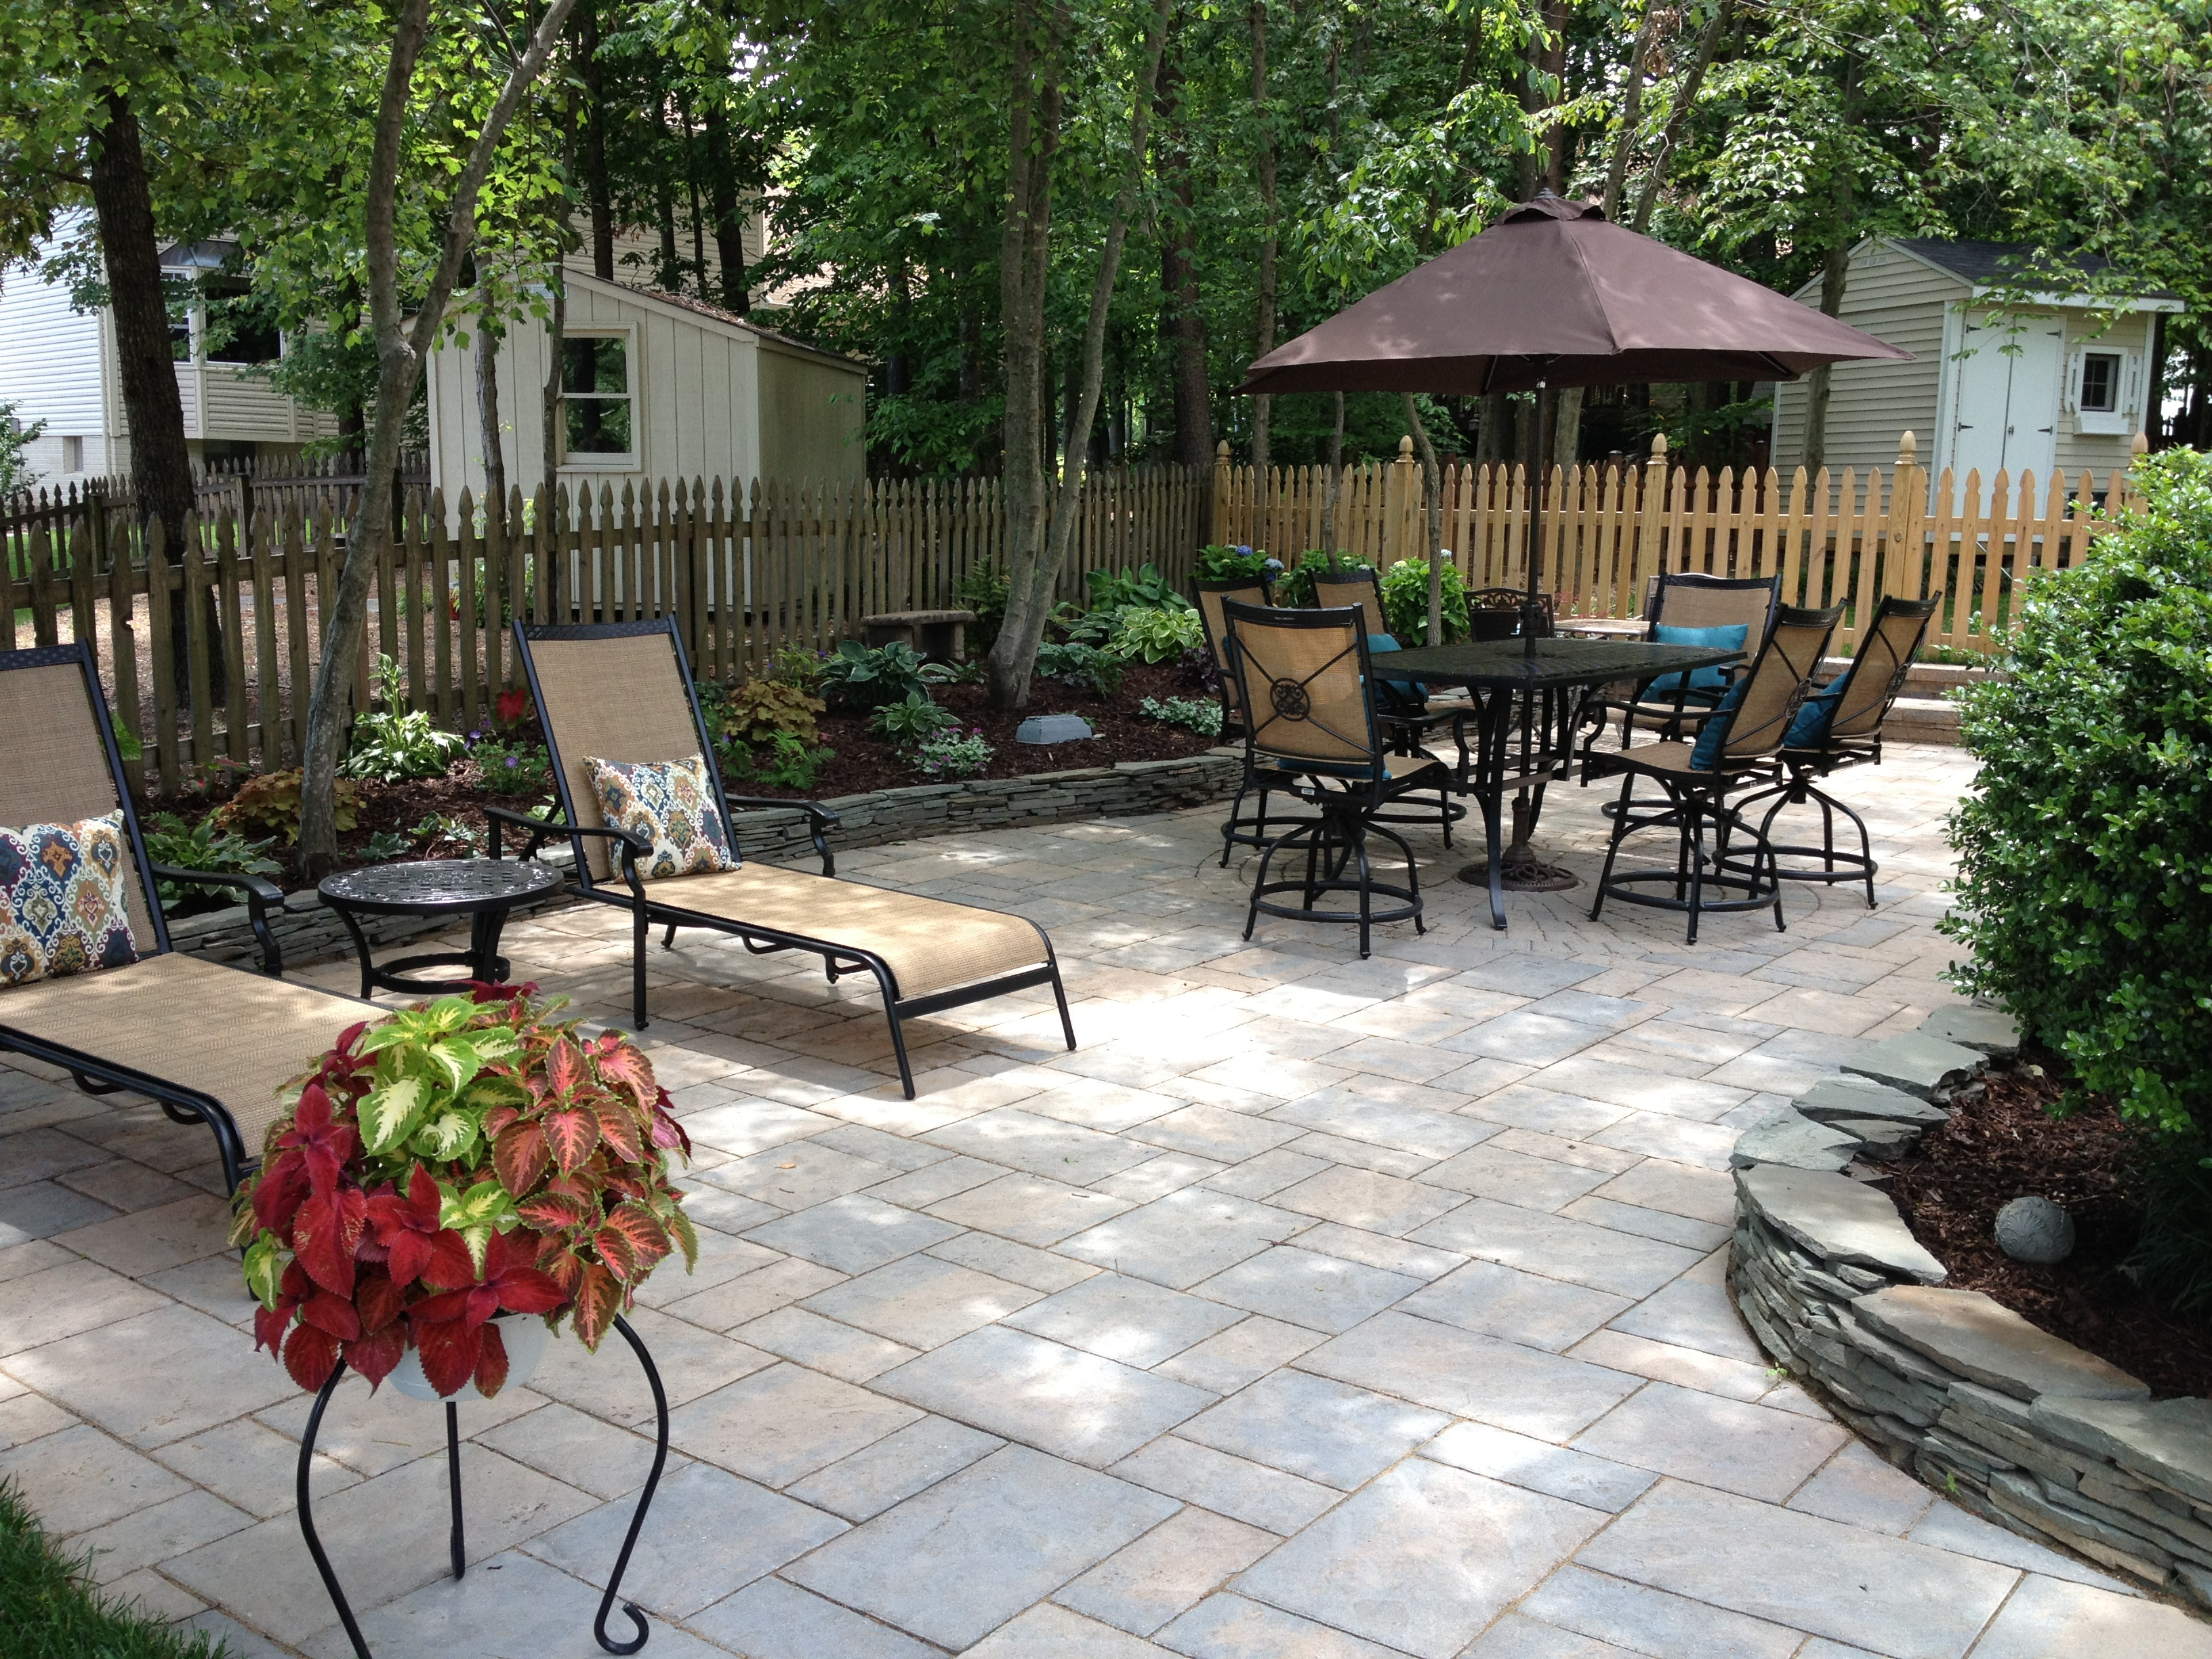 45 Backyard Patio Designs Ideas That Inspire You